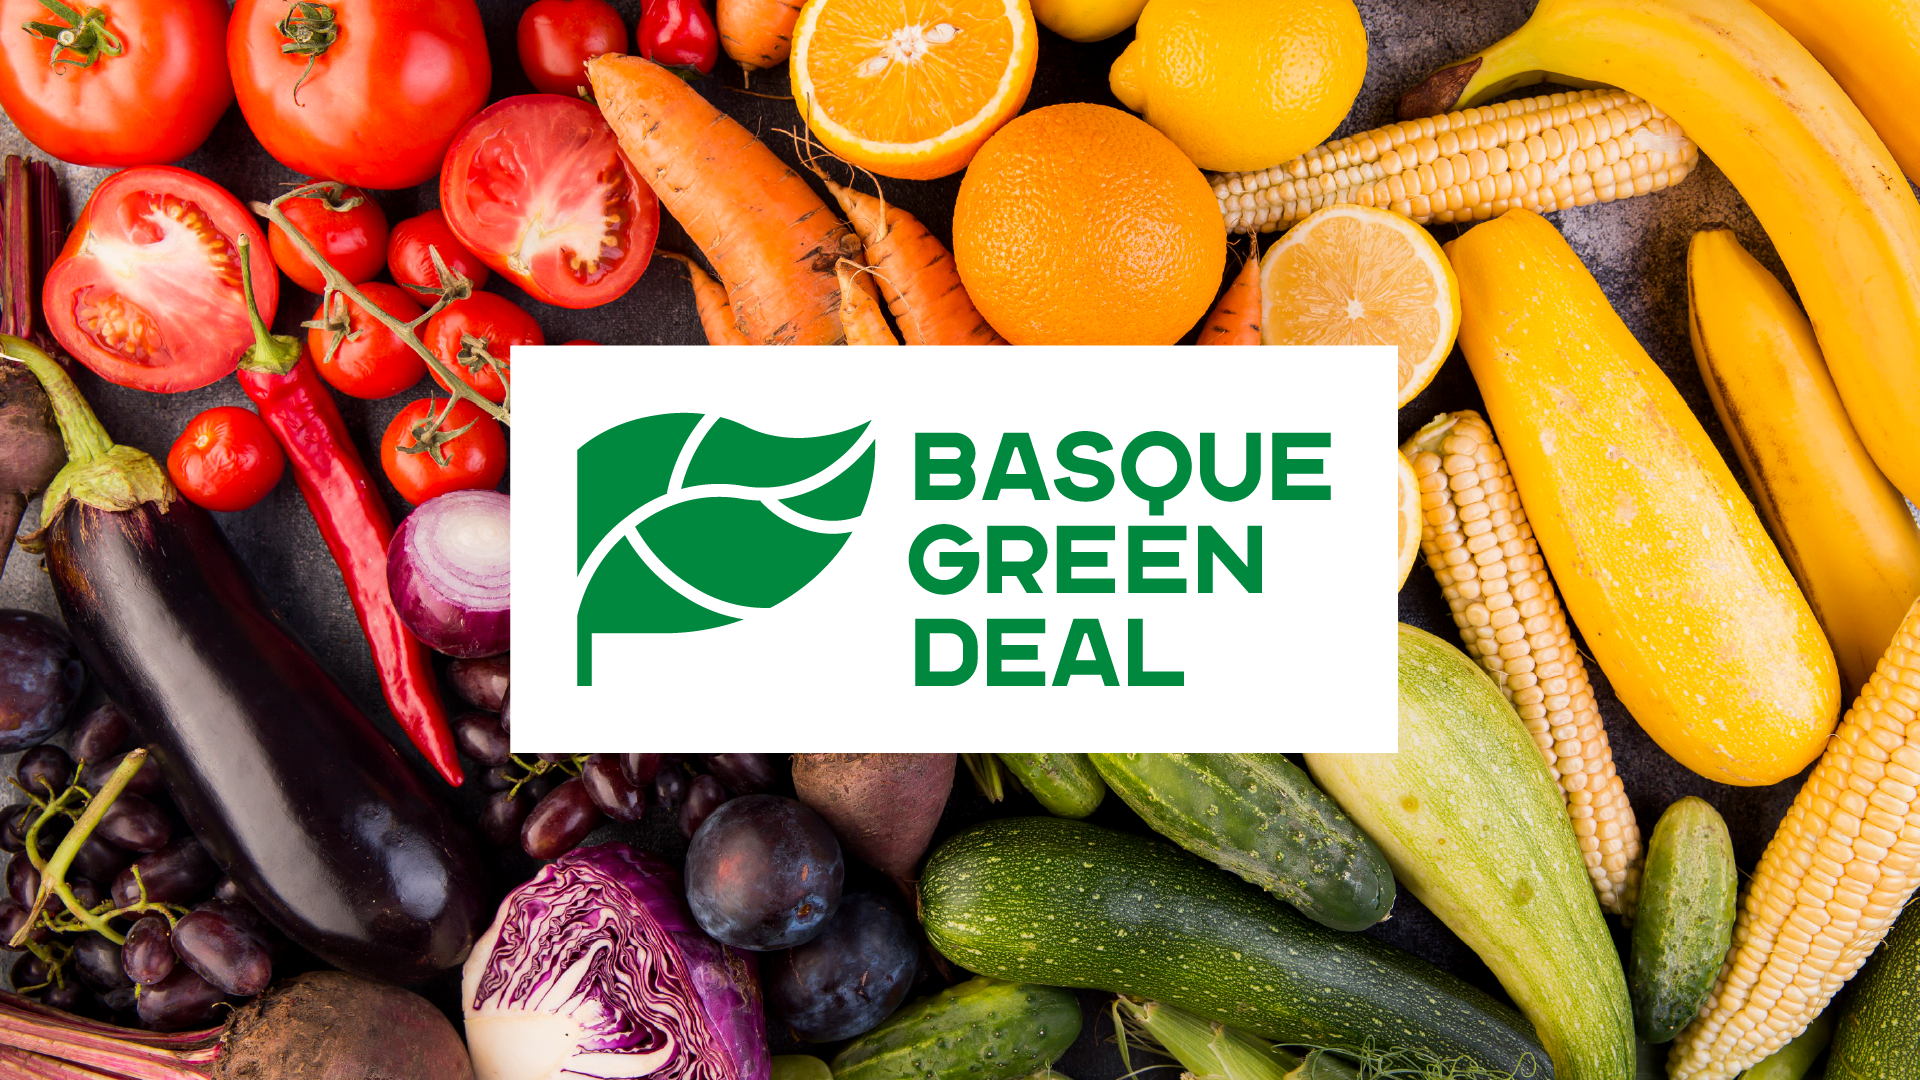 Basque_Green_Deal_14R.png